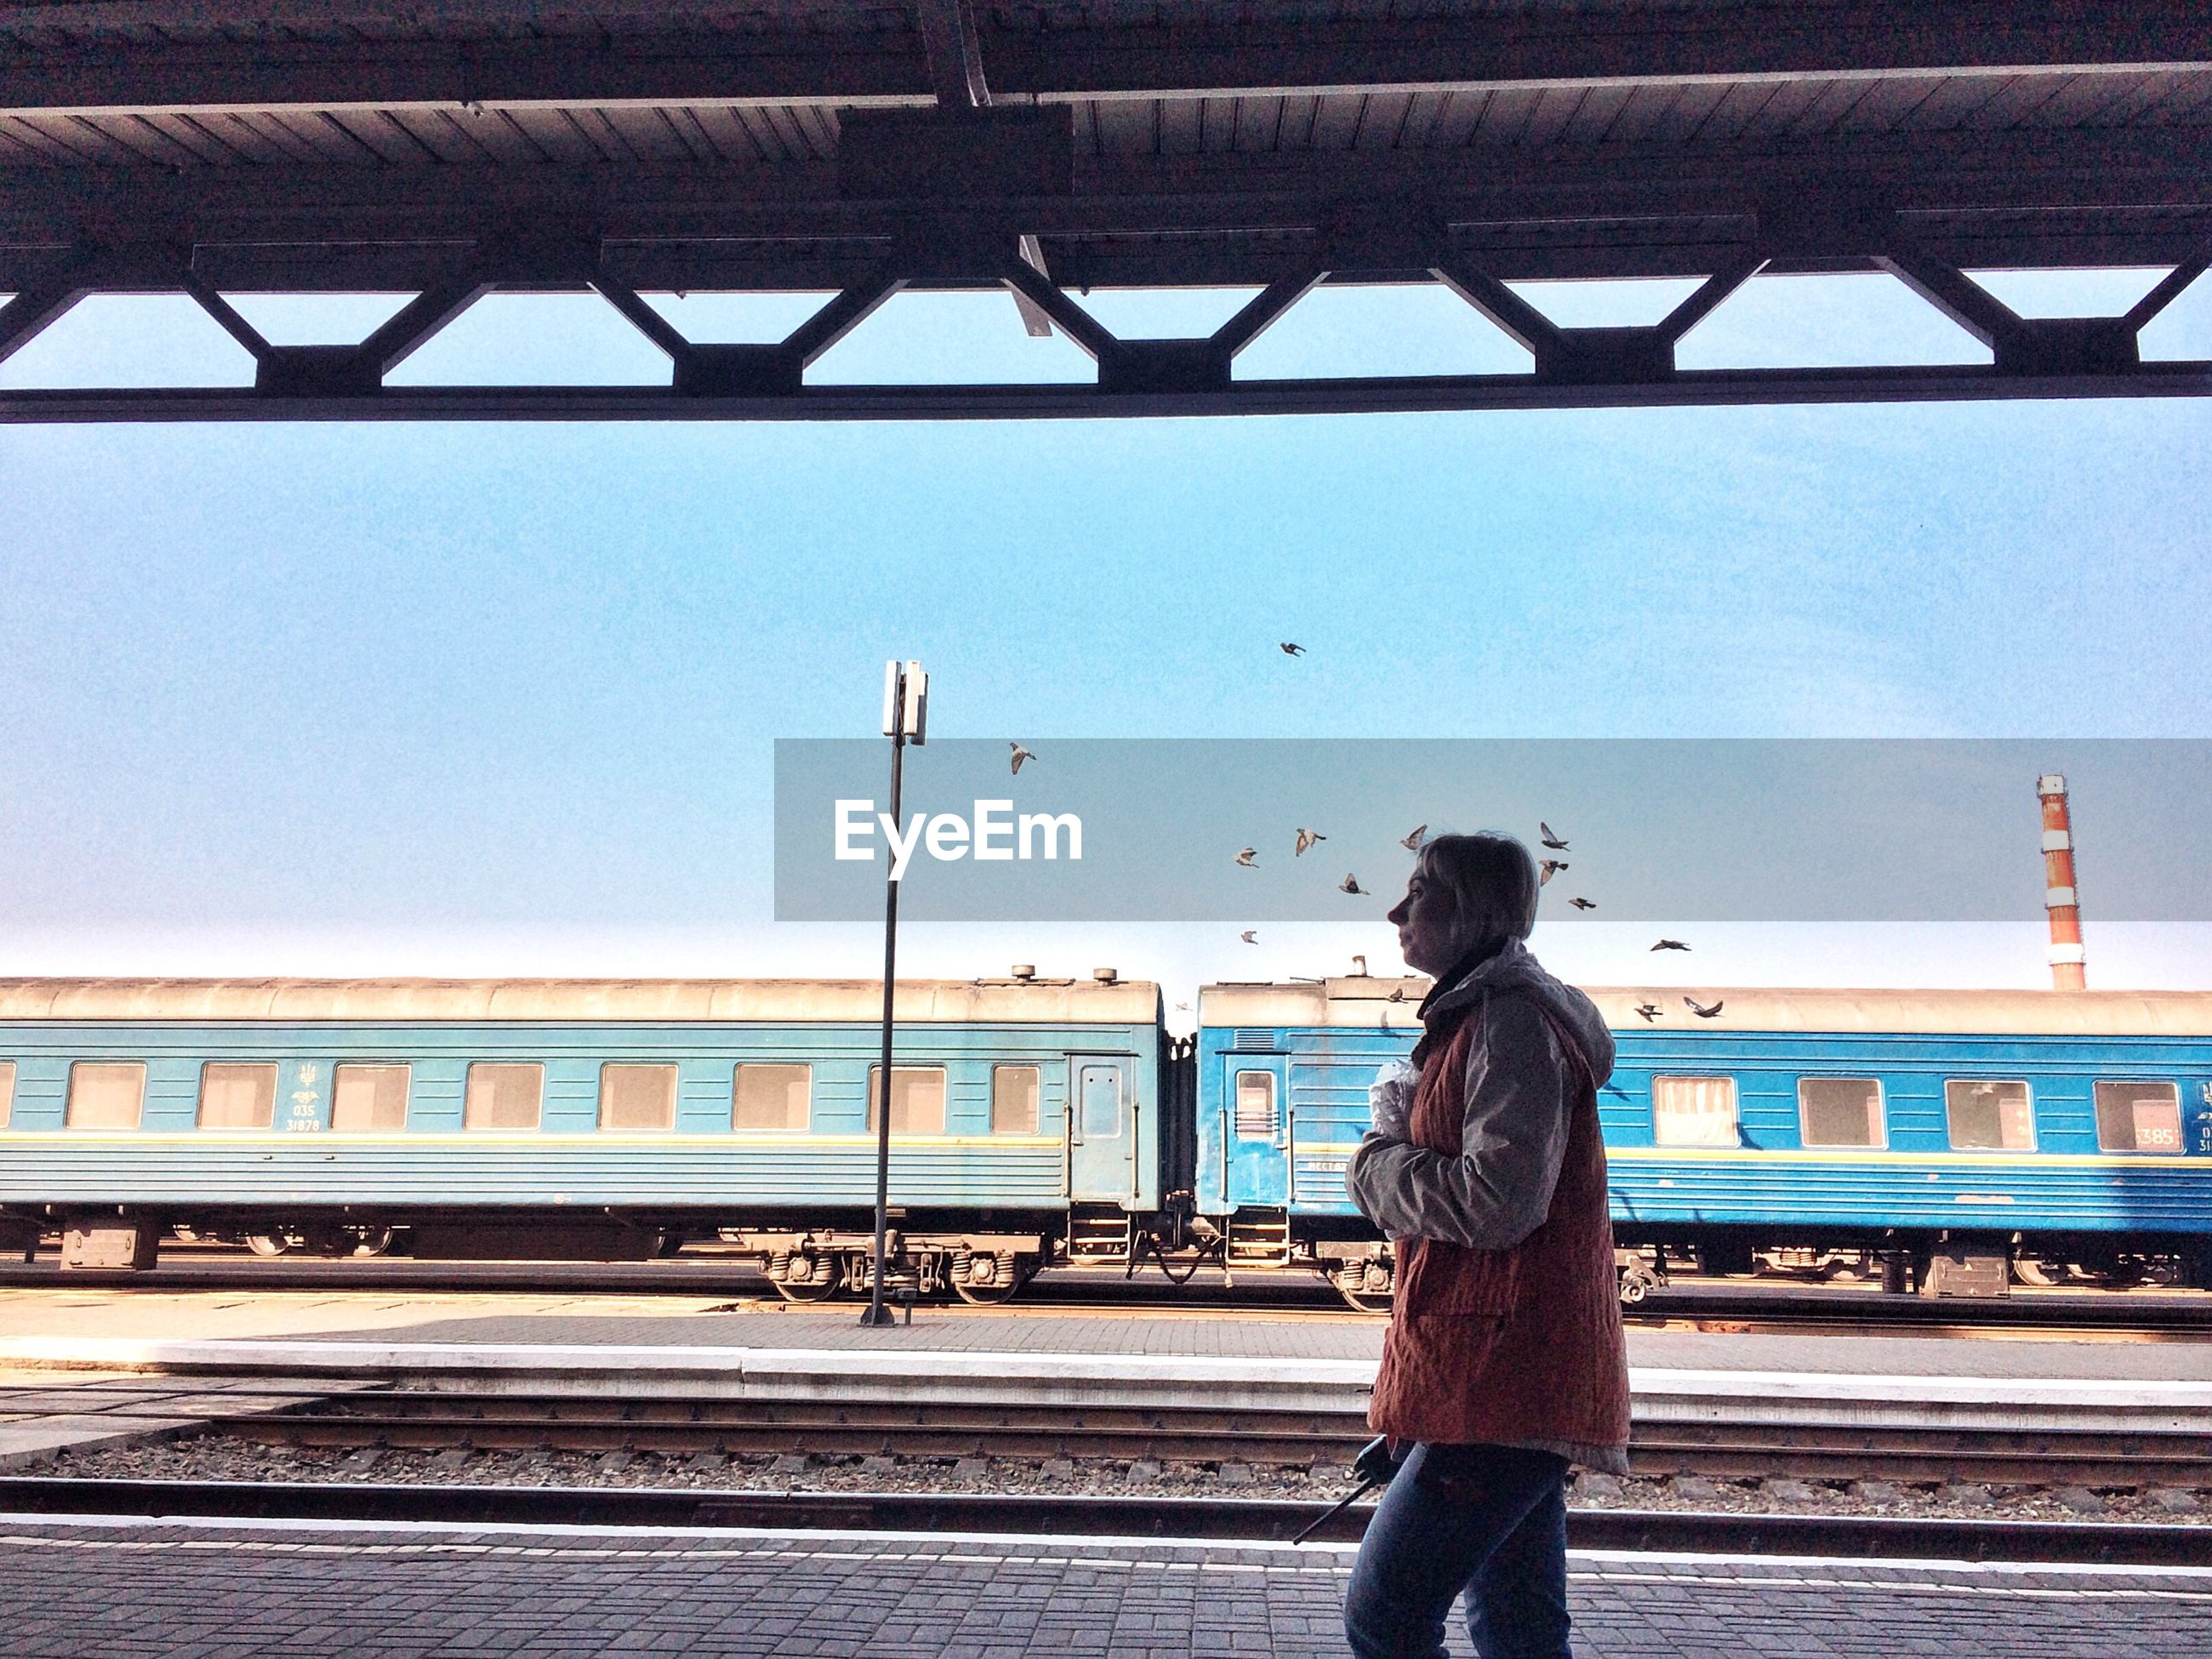 rail transportation, sky, transportation, real people, public transportation, railroad track, track, one person, lifestyles, train, railroad station, railroad station platform, casual clothing, architecture, leisure activity, standing, built structure, train - vehicle, mode of transportation, rear view, outdoors, hairstyle, waiting